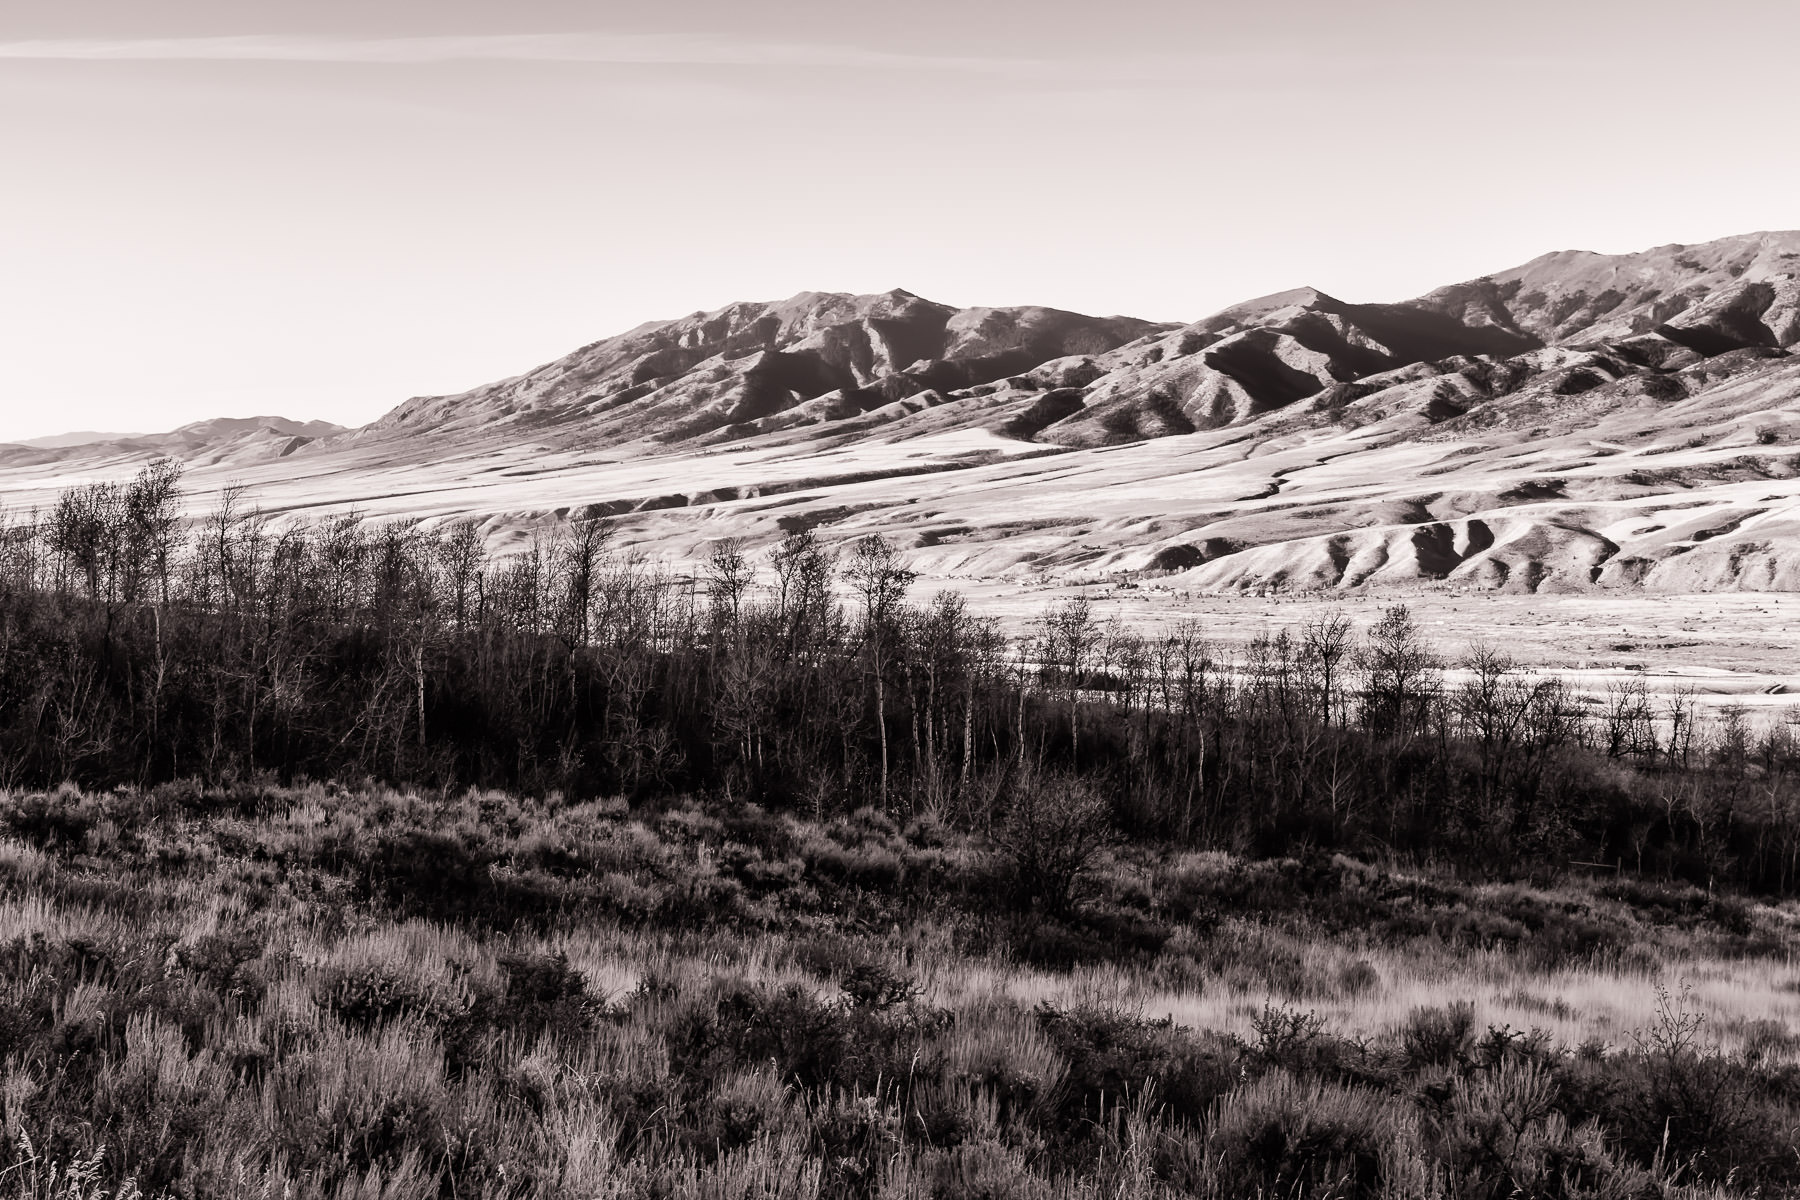 Trees grow in the mountainous landscape near Pocatello, Idaho.